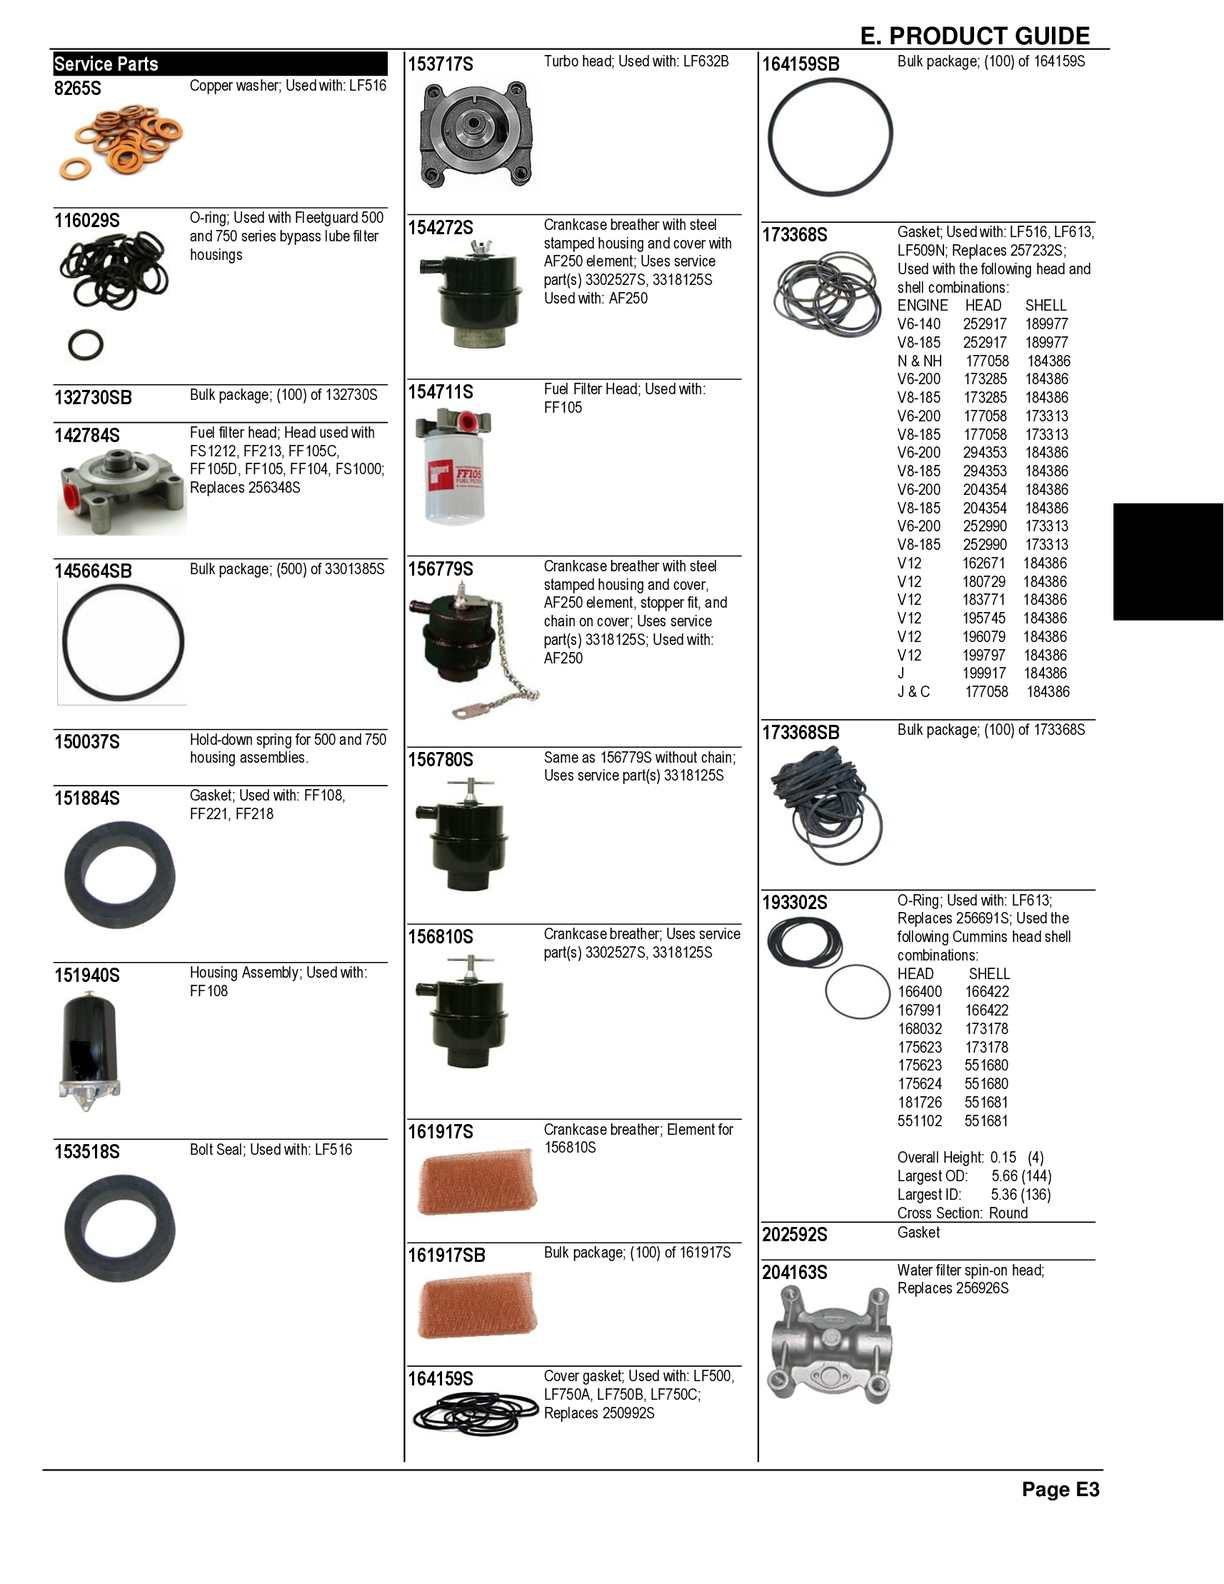 Calamo E3 E352 Pg2015 03 31 2238 As Of 4 15 Newest200 Copy Hyster Forklift Wiring Diagram E60